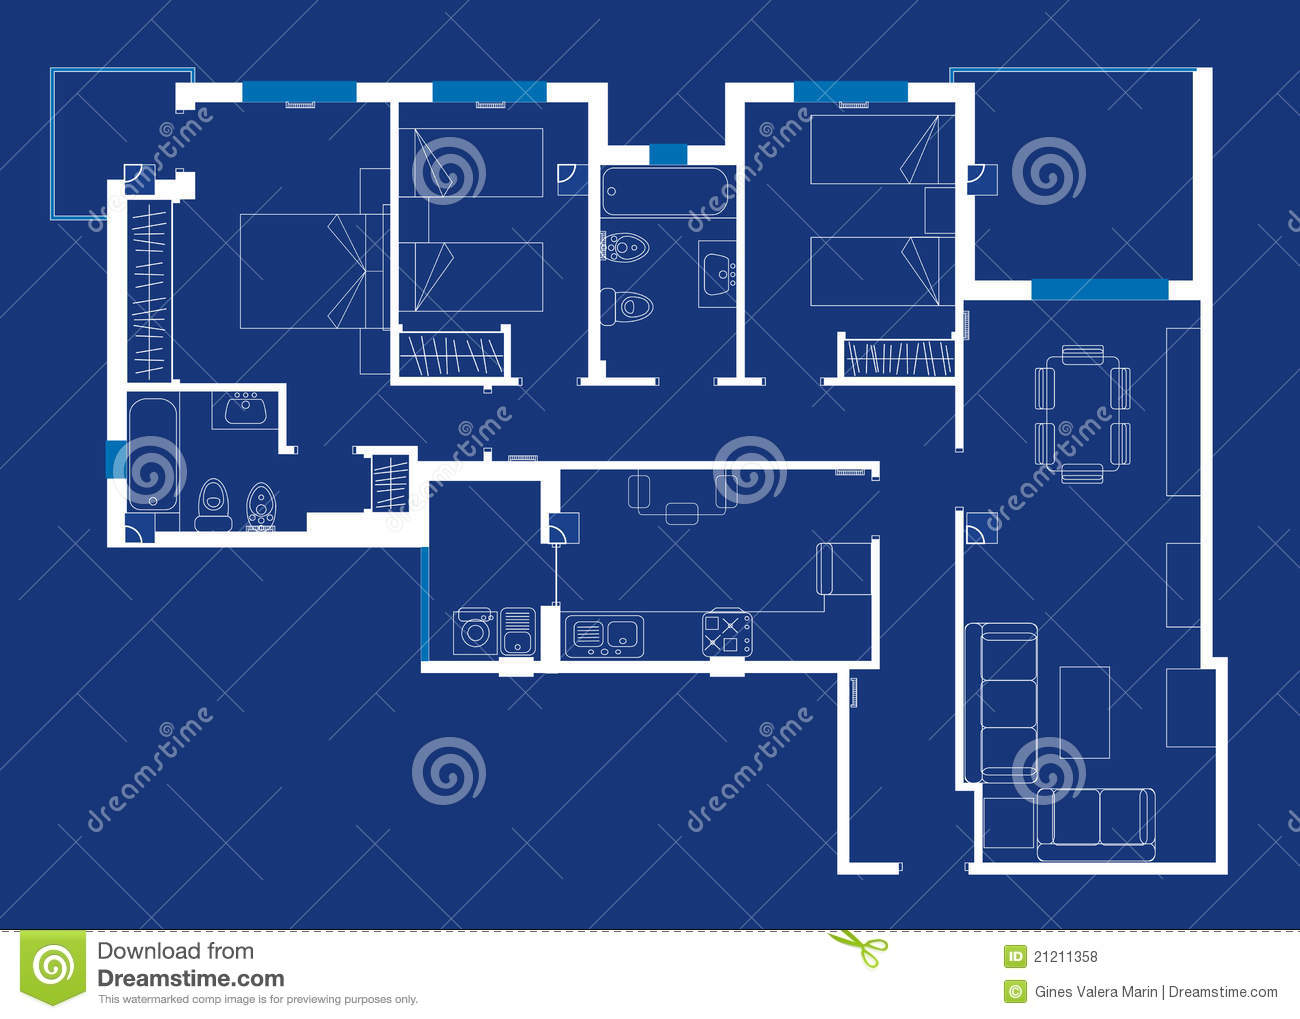 House blueprint royalty free stock photos image 21211358 for How to make a blueprint of a house